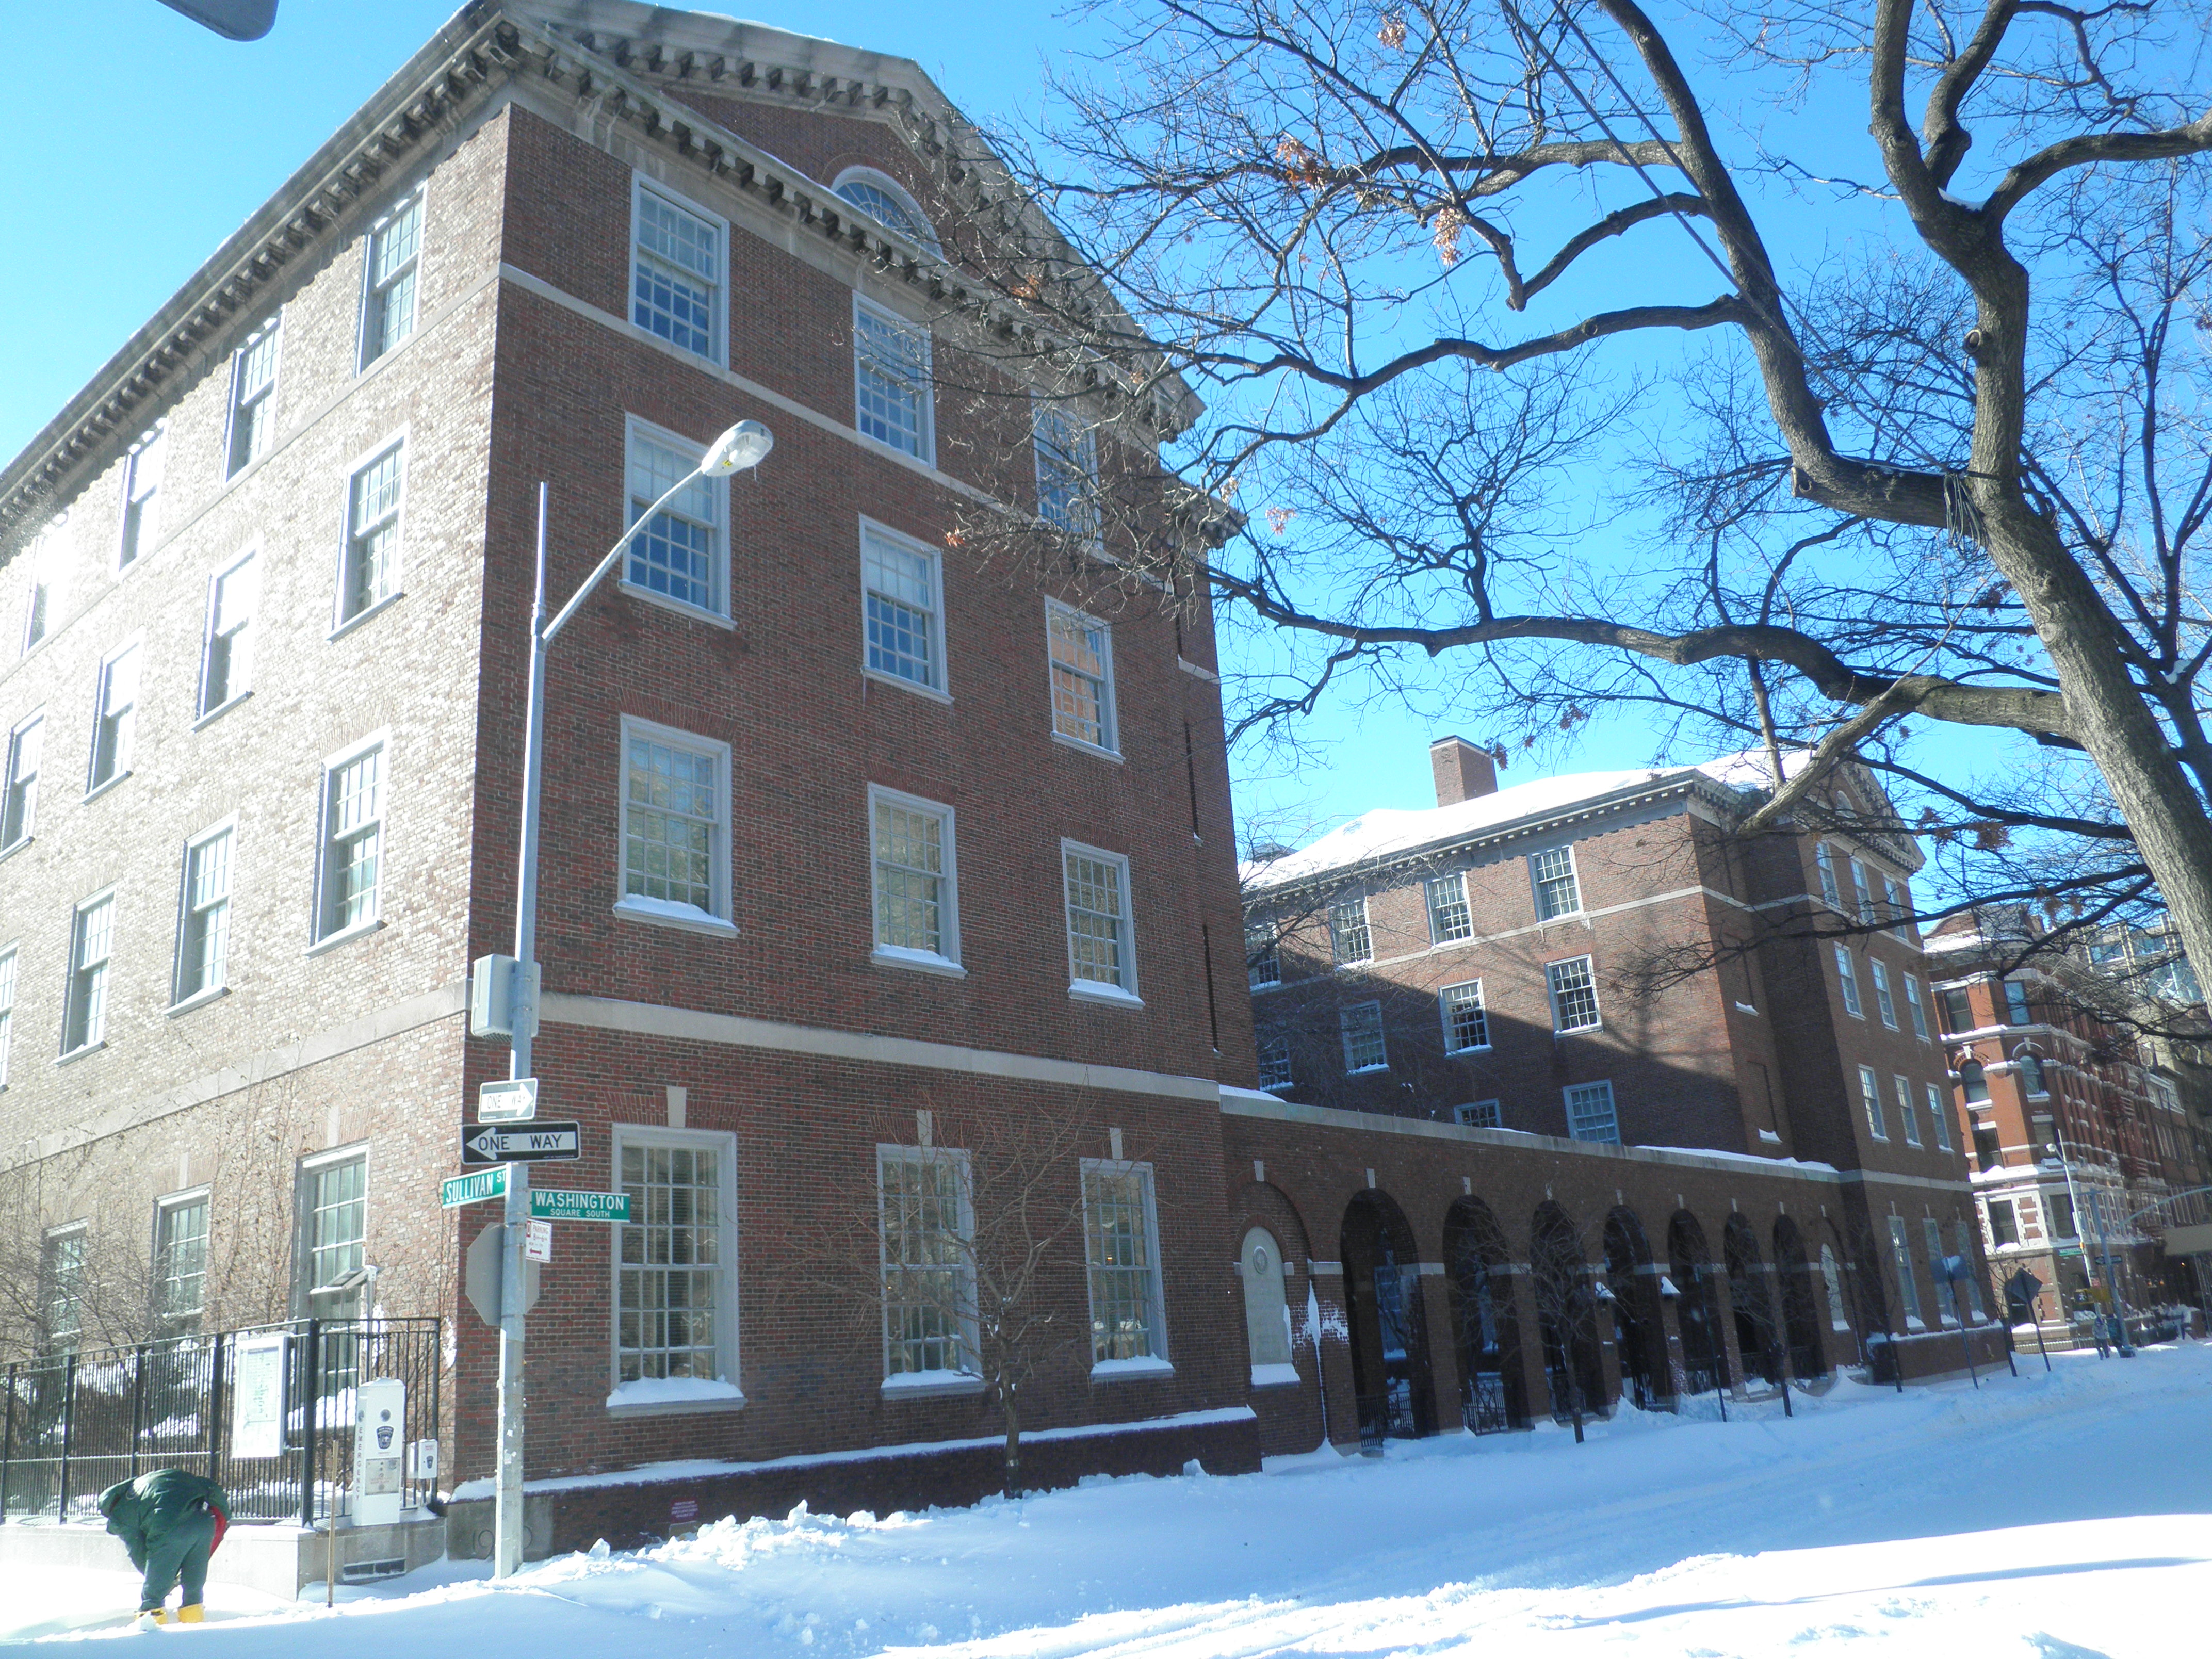 nyu essays 2012 Nyu's stern school of business recently released its application deadlines and essays for the class of 2015 just as we have seen with other top-ranked business schools so far, stern has.